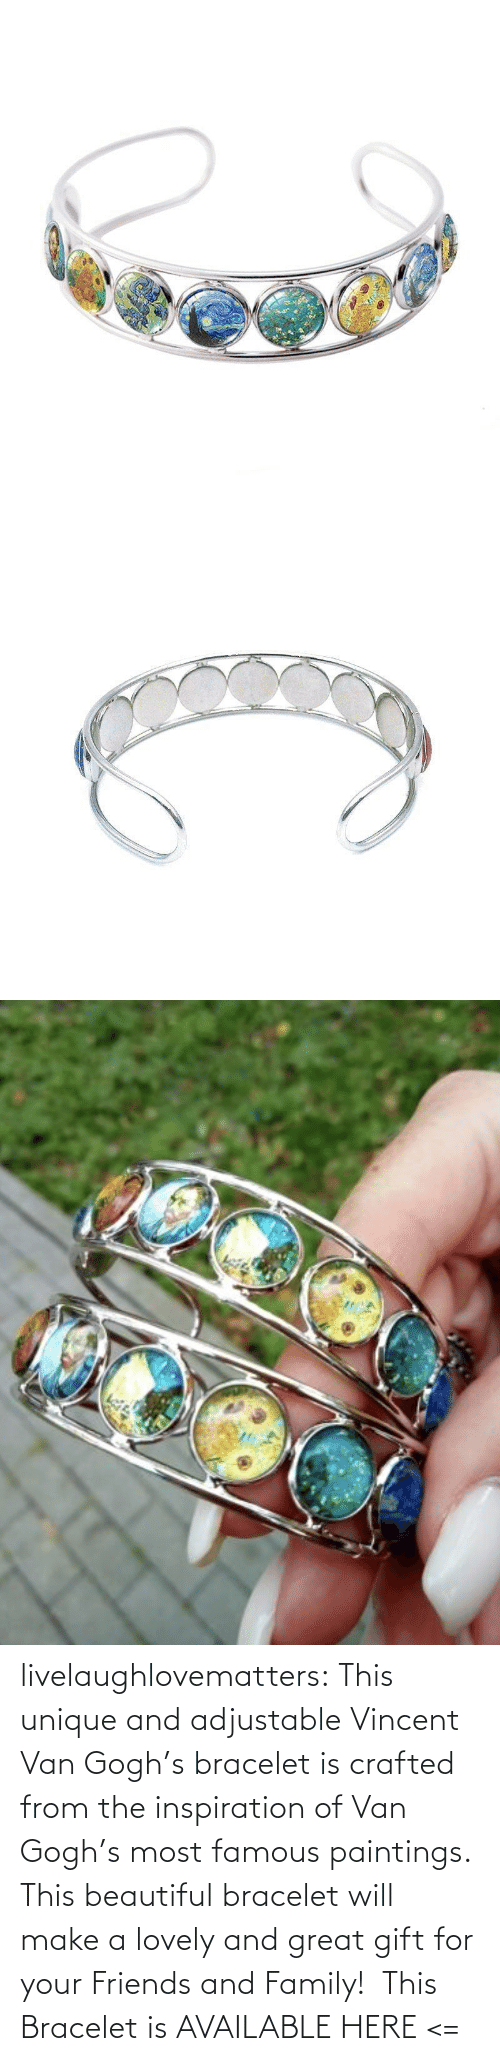 famous: livelaughlovematters: This unique and adjustable Vincent Van Gogh's bracelet is crafted from the inspiration of Van Gogh's most famous paintings. This beautiful bracelet will make a lovely and great gift for your Friends and Family!  This Bracelet is AVAILABLE HERE <=